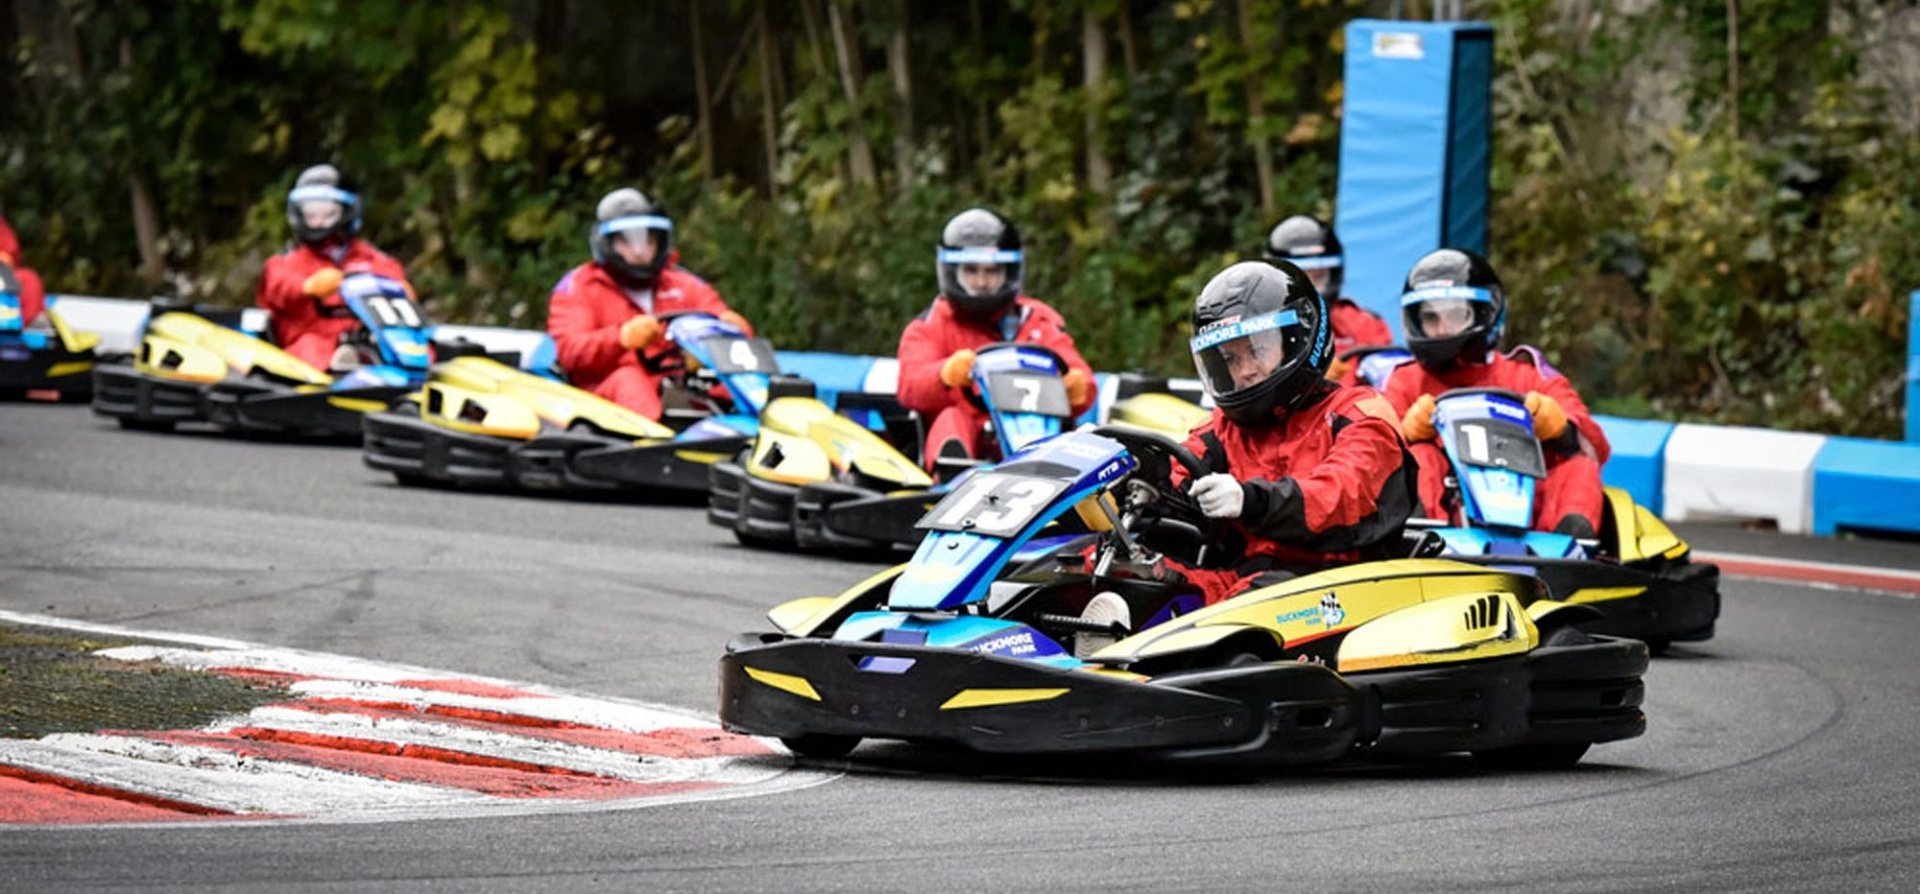 Buckmore Karting Solo Endurance 30 Experience in Kent-1